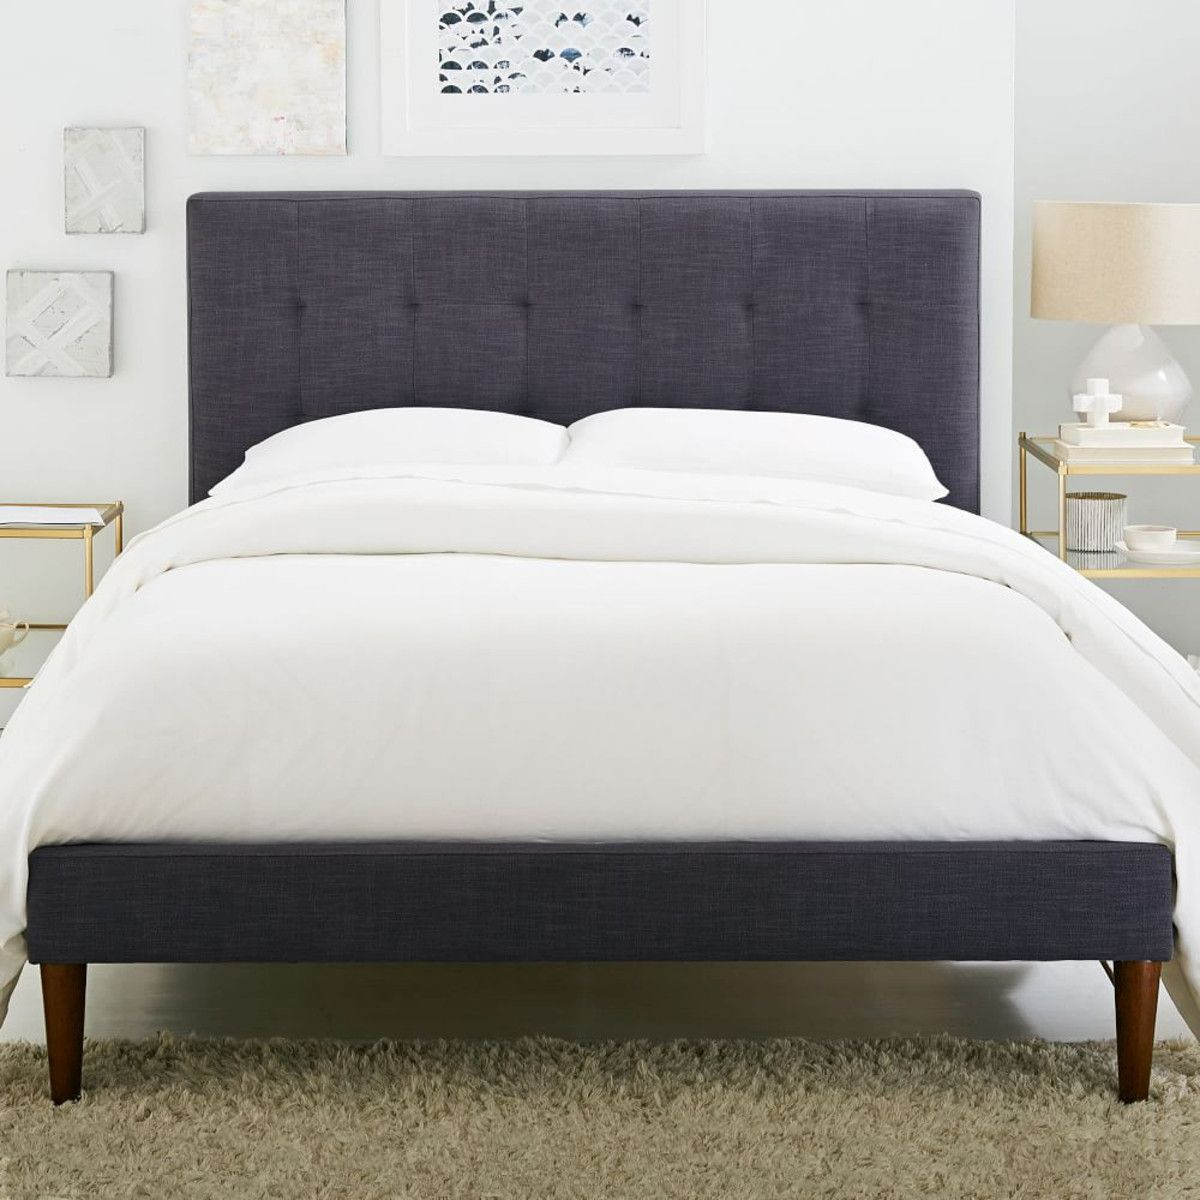 grid tufted upholstered tapered leg bed steel grey sleep